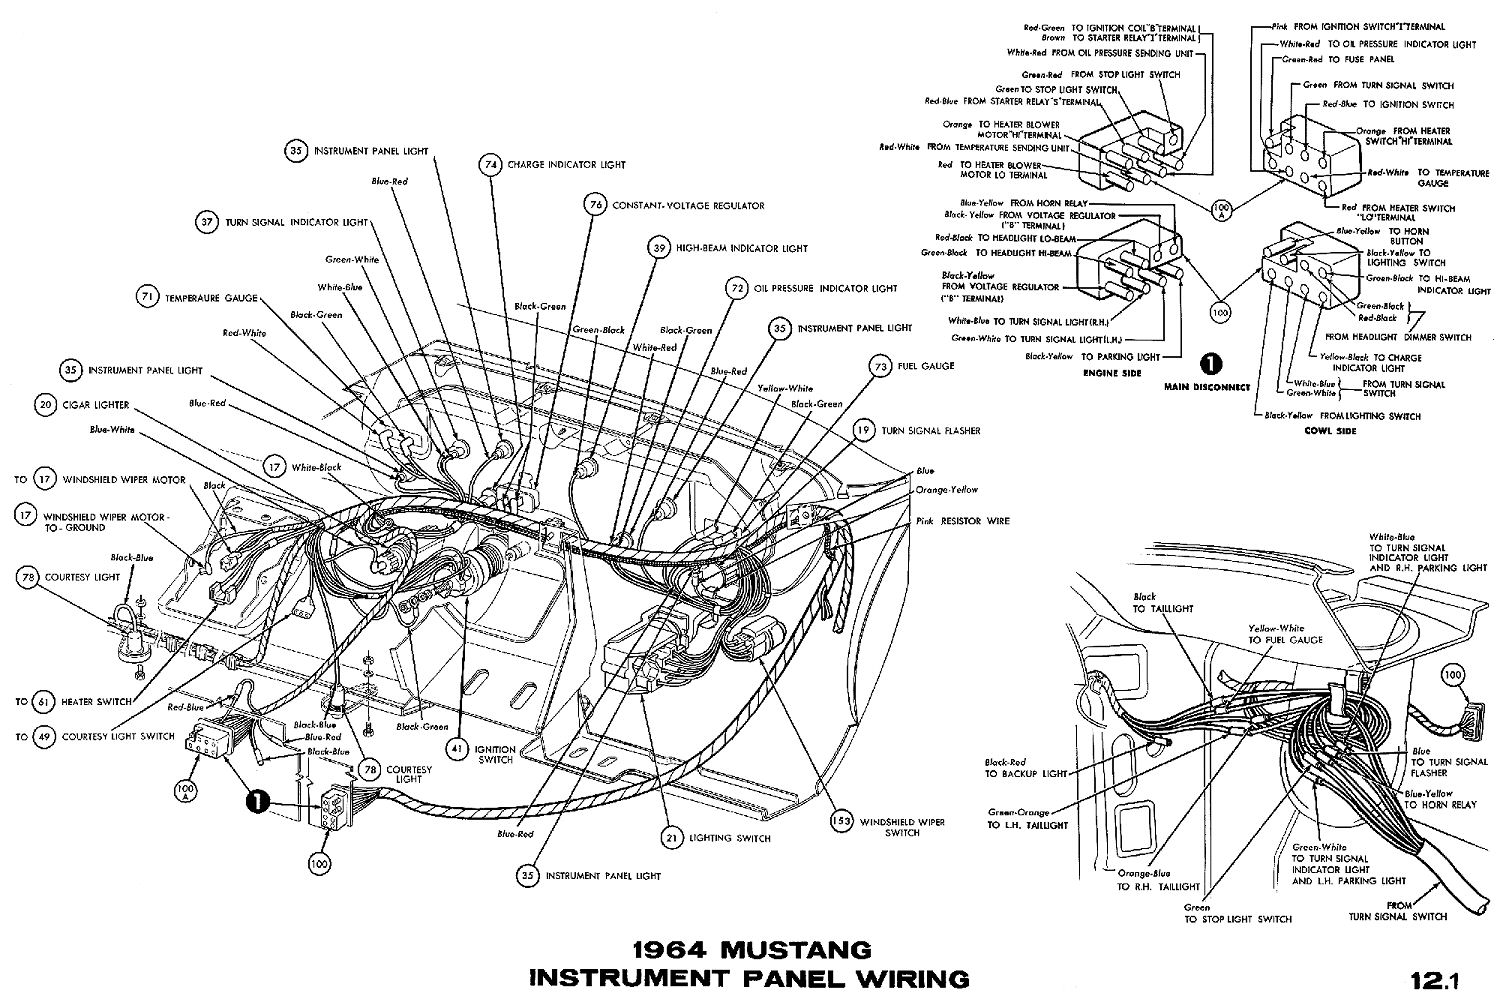 1964b 1969 mustang wiring diagram 1969 ranchero wiring diagram \u2022 wiring 1969 mustang alternator wiring diagram at gsmportal.co